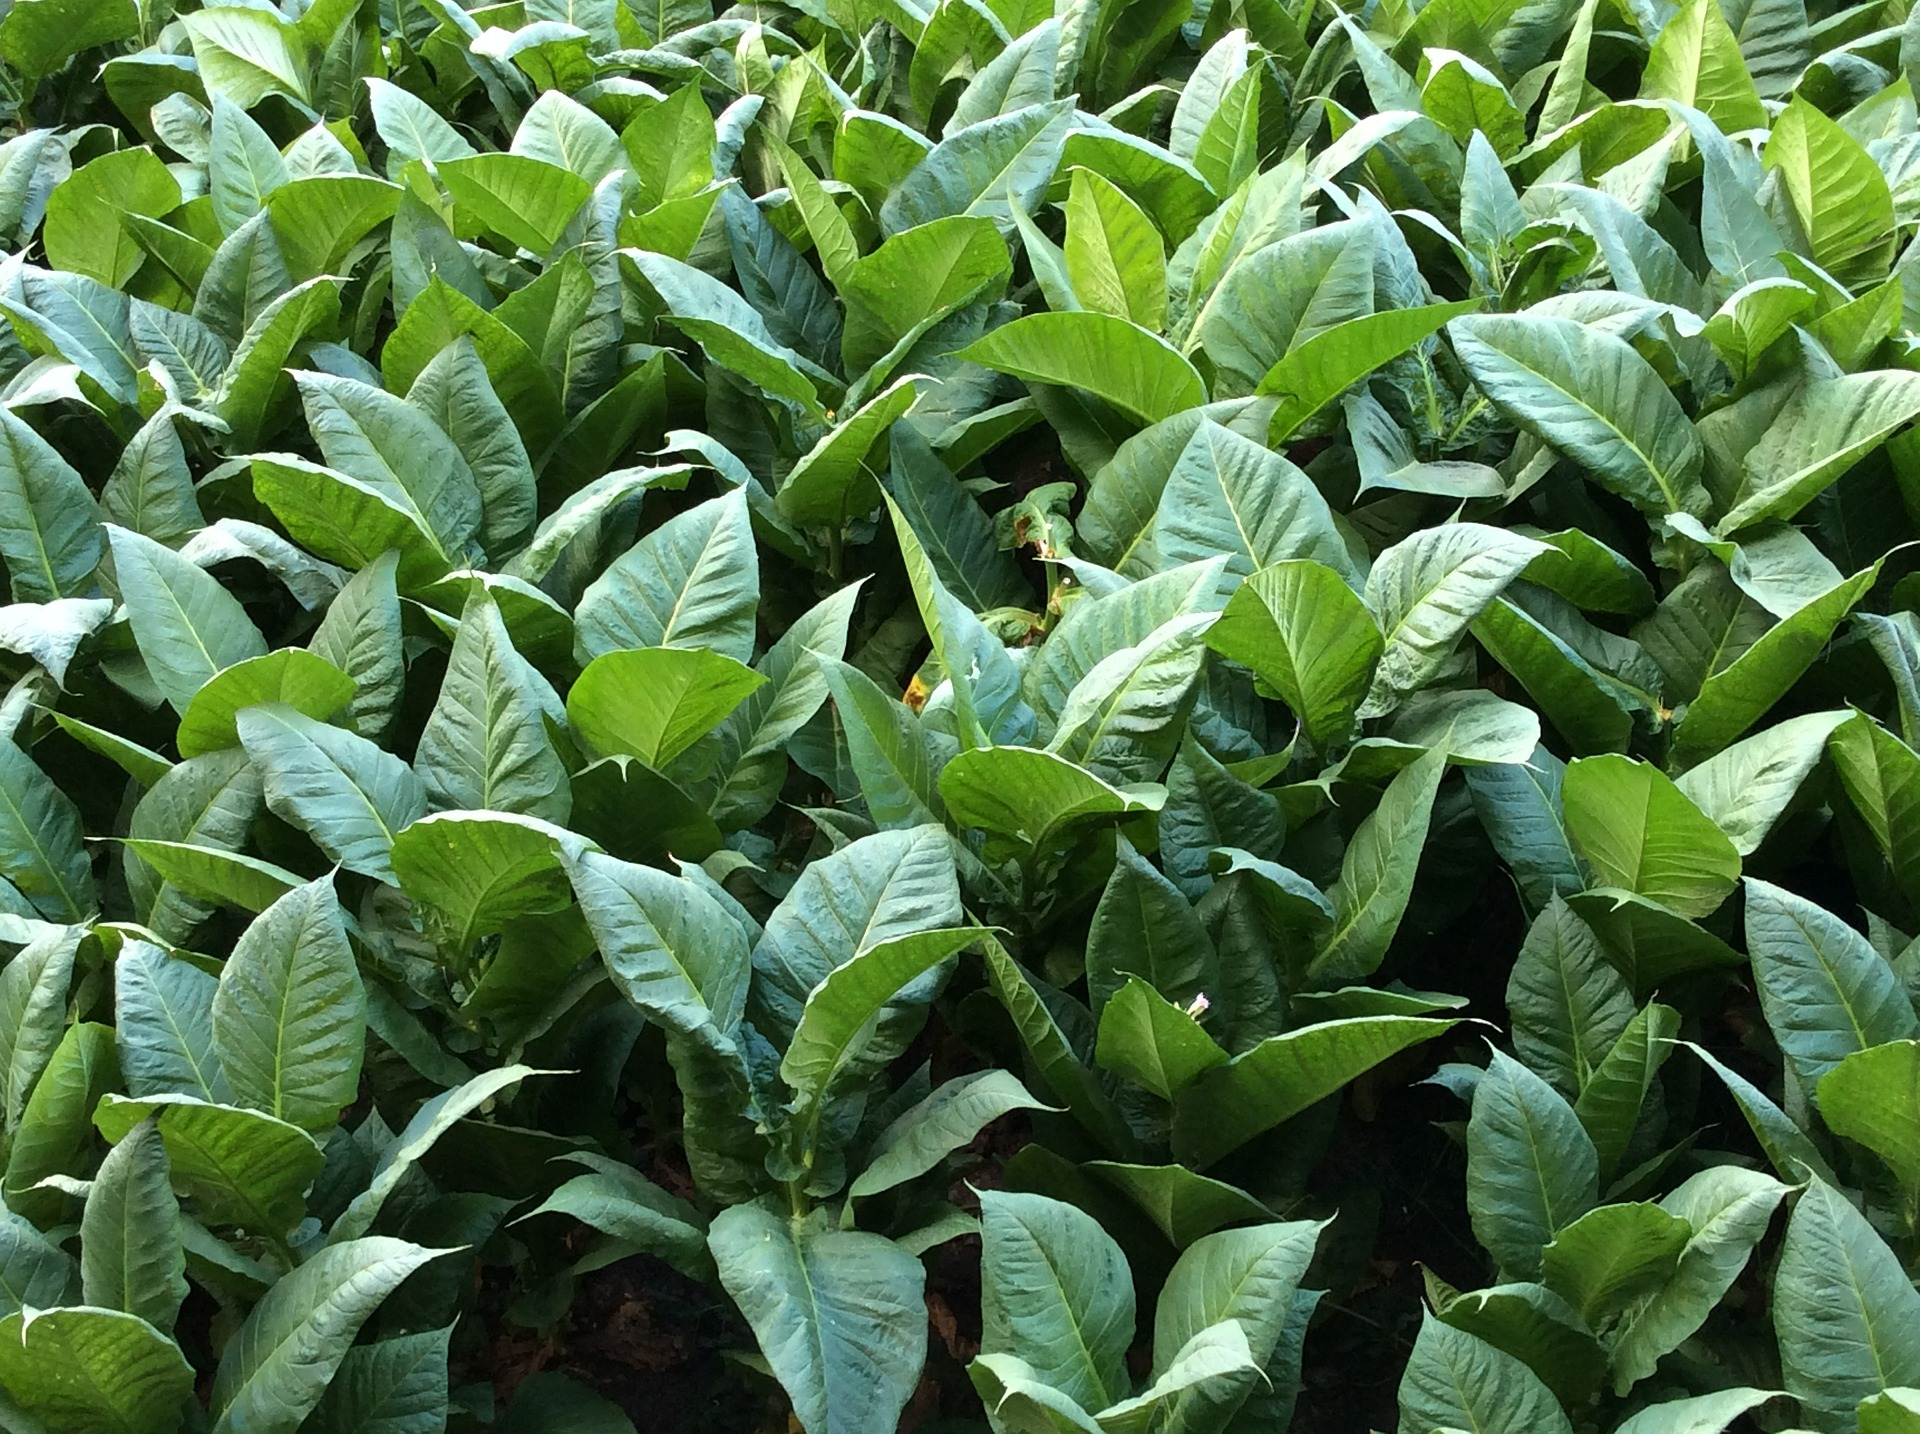 Image of tobacco